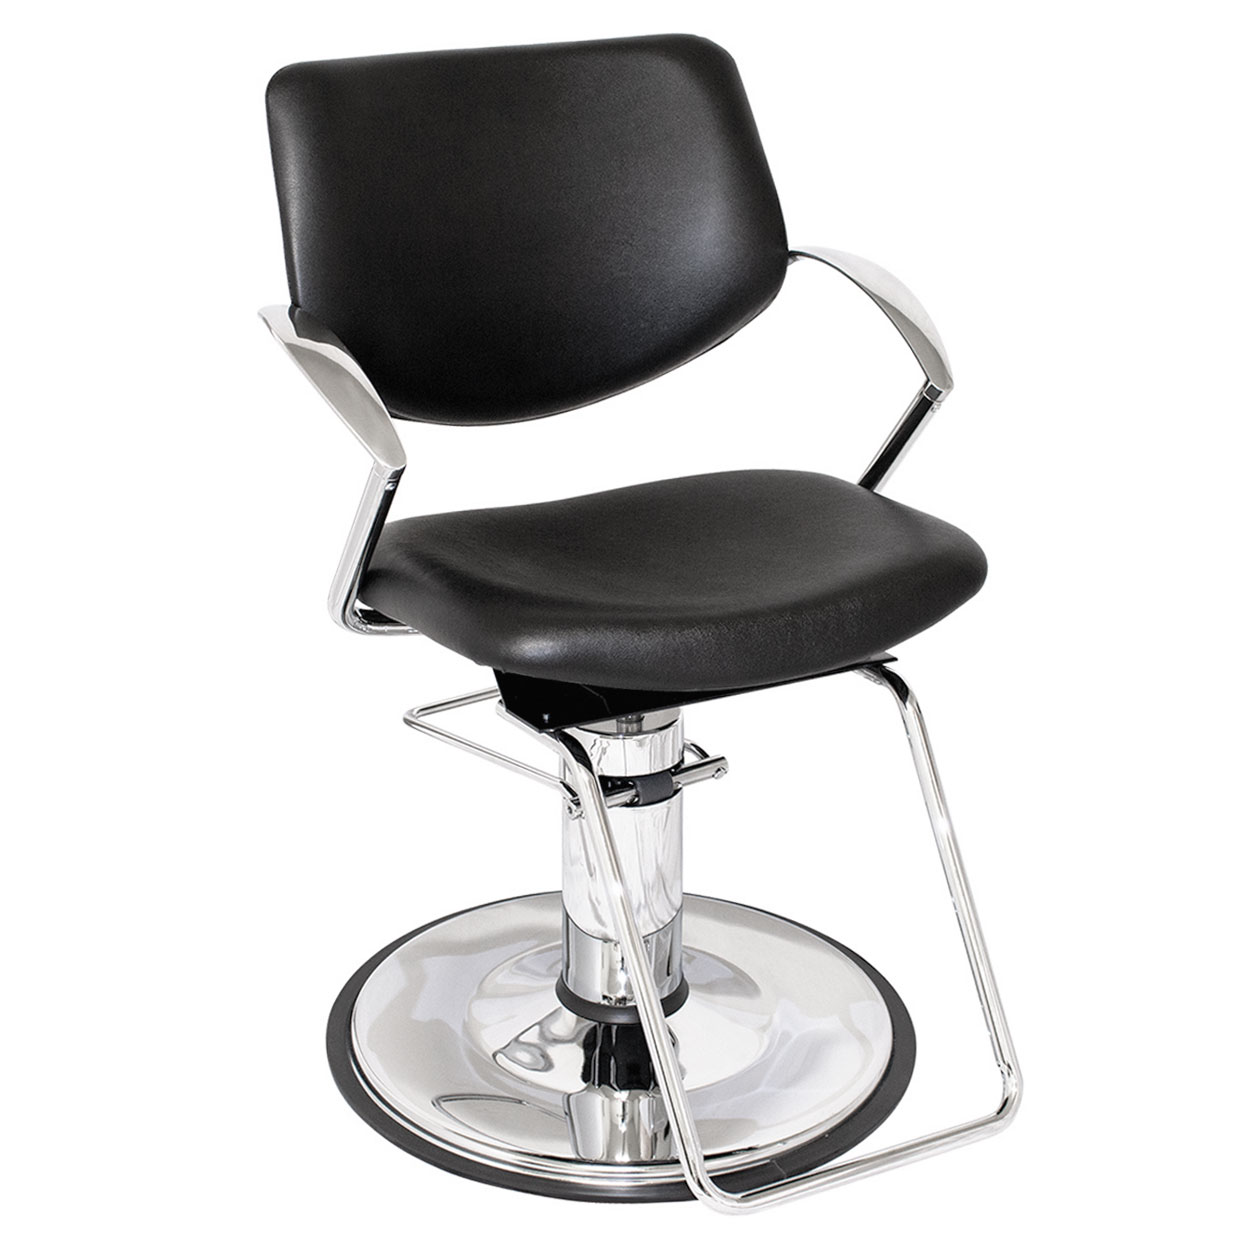 Takara Belmont Sara Styling Chair image size reference